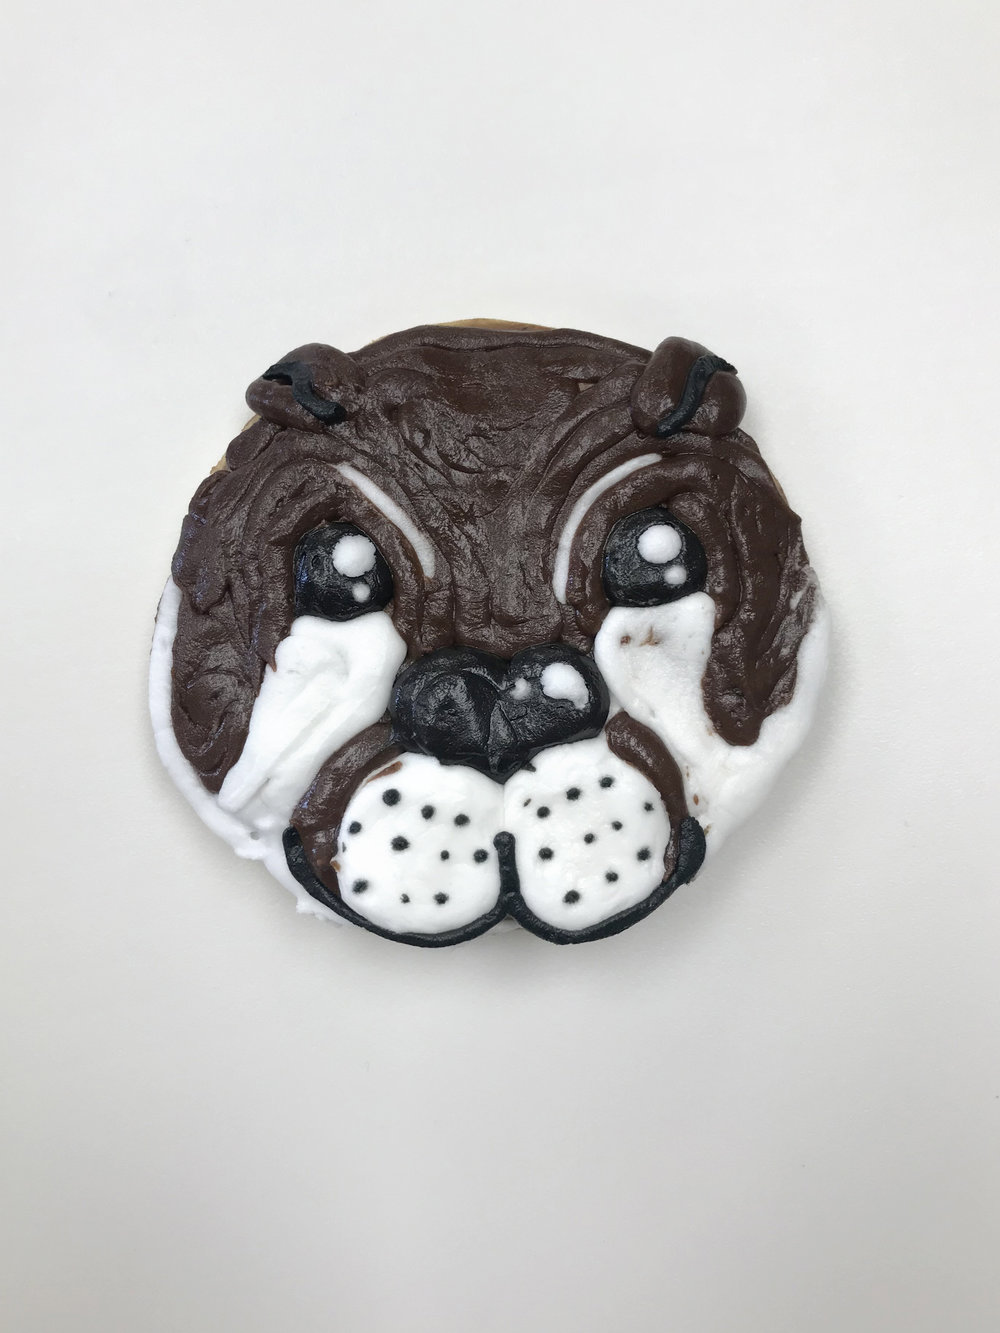 Otter Cutout Cookie